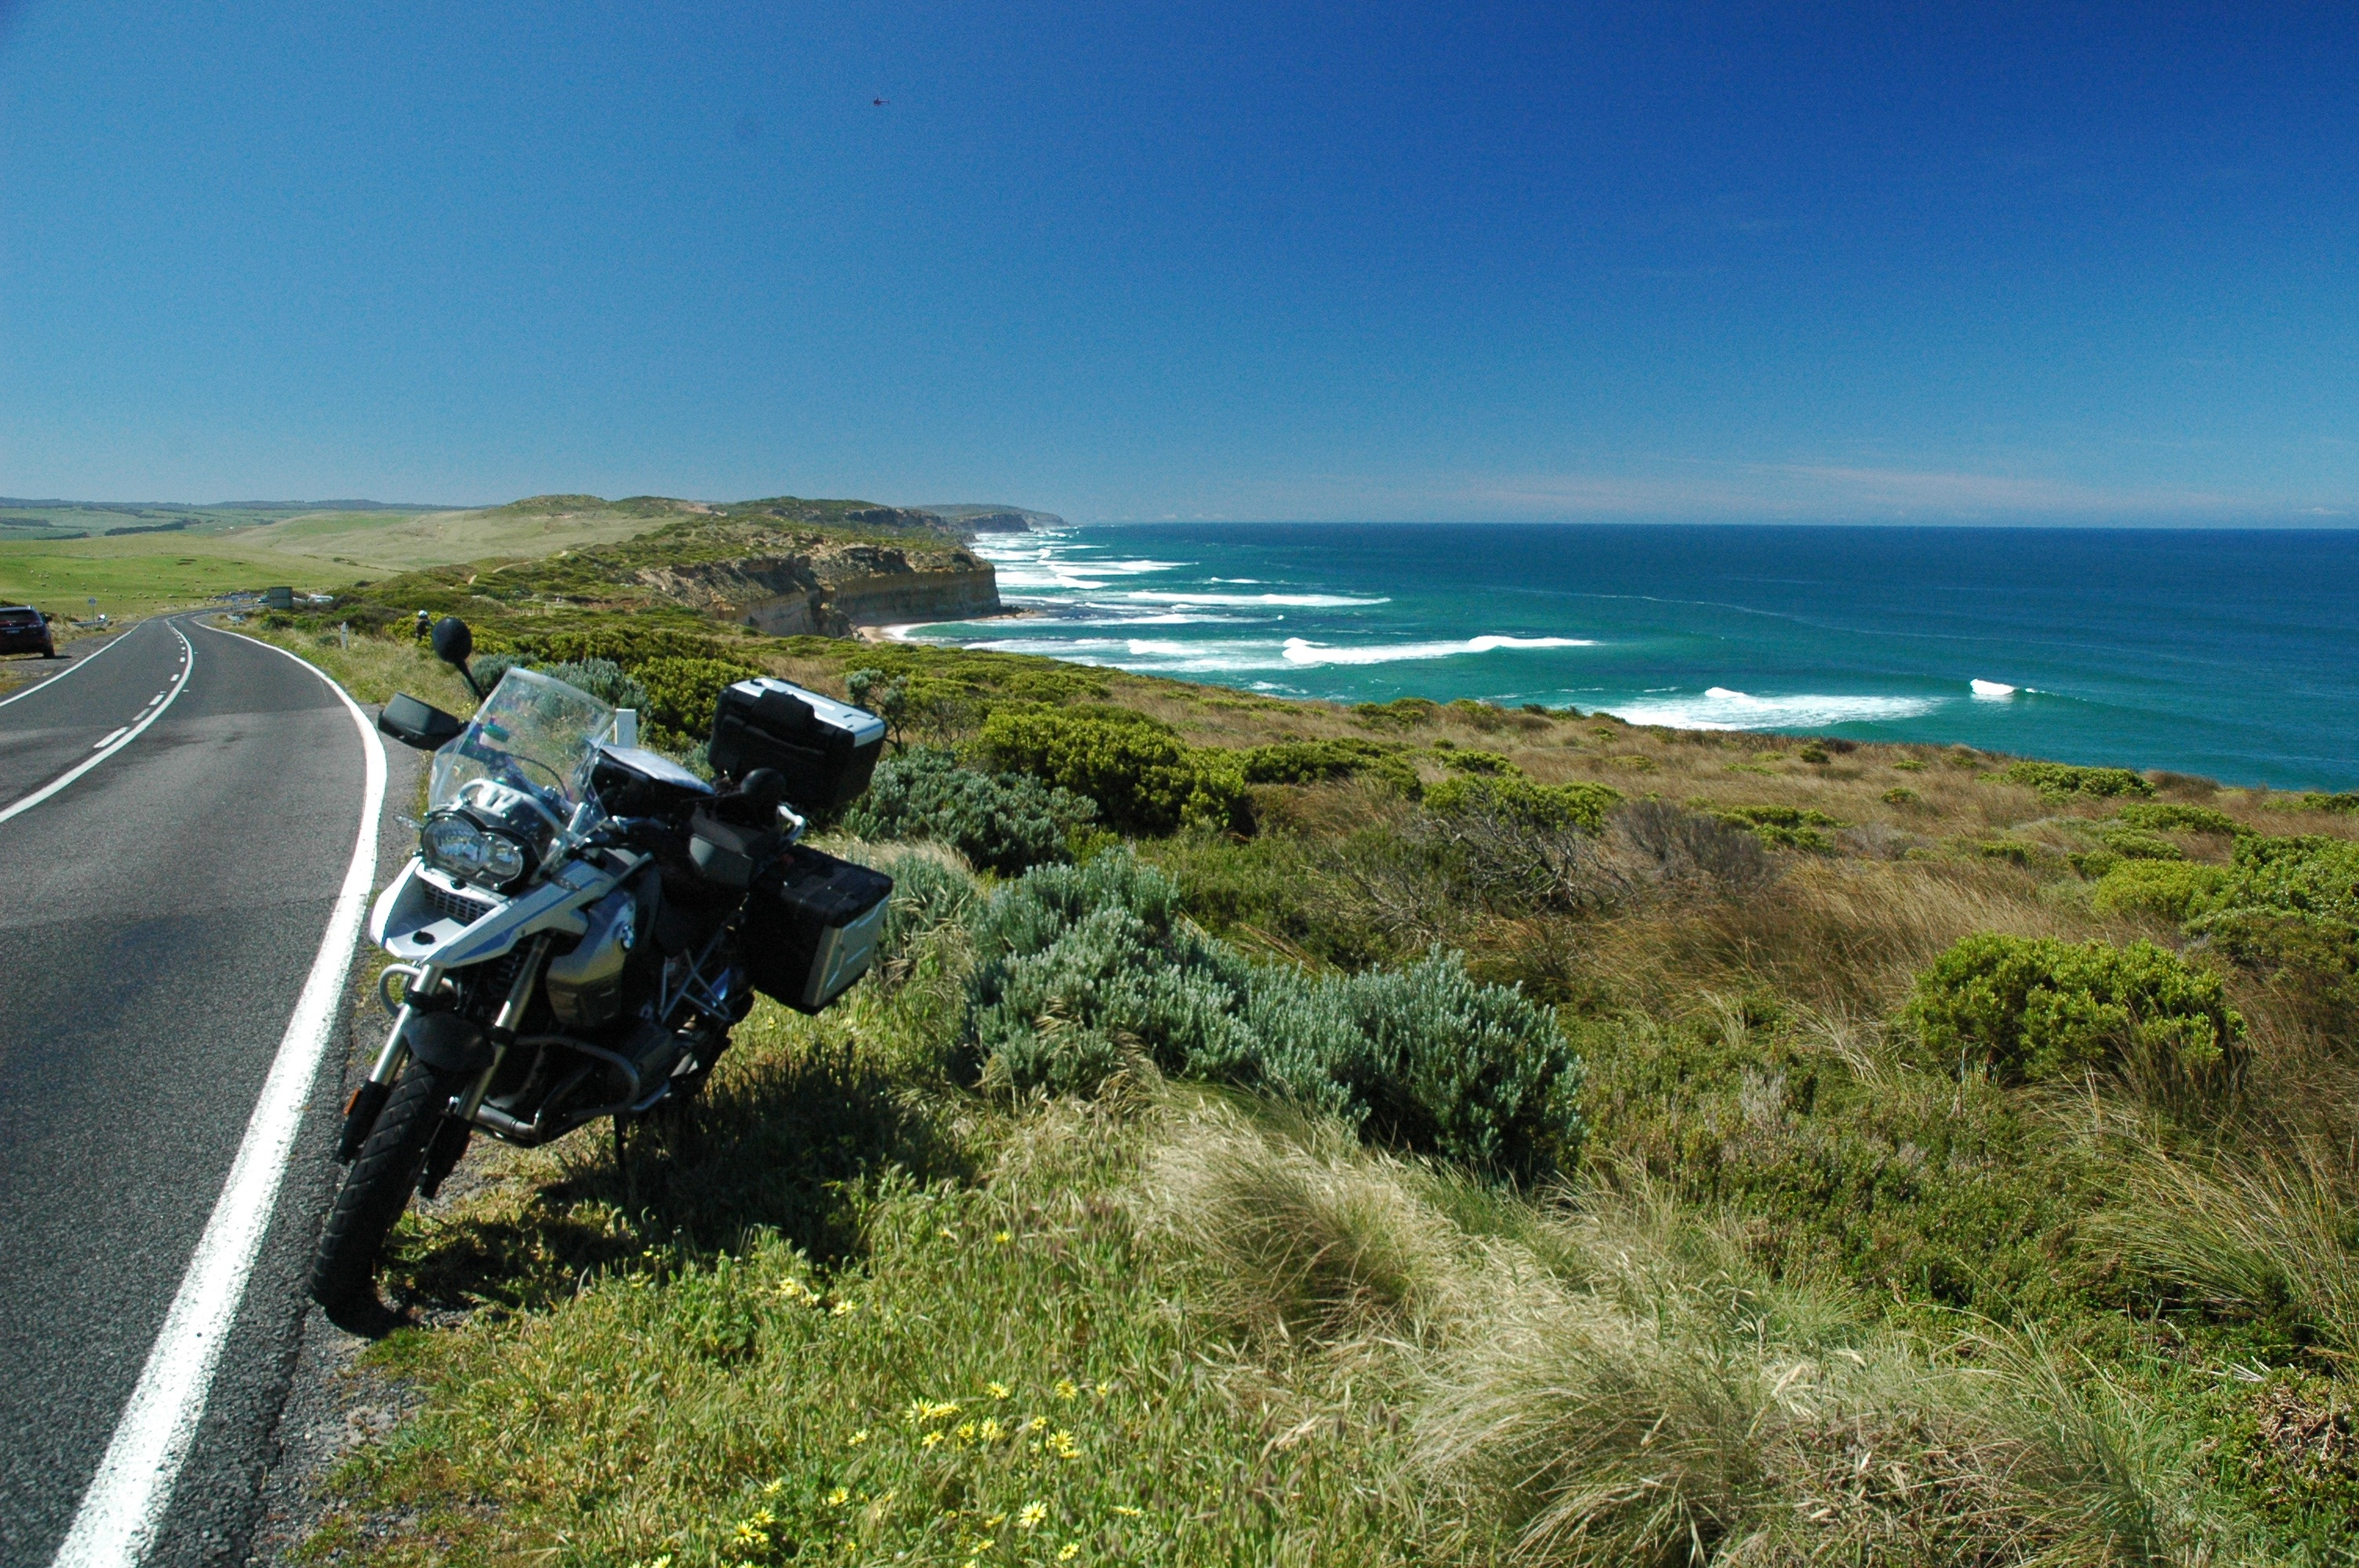 BMW R1200GS on the Great Ocean Road near Port Campbell